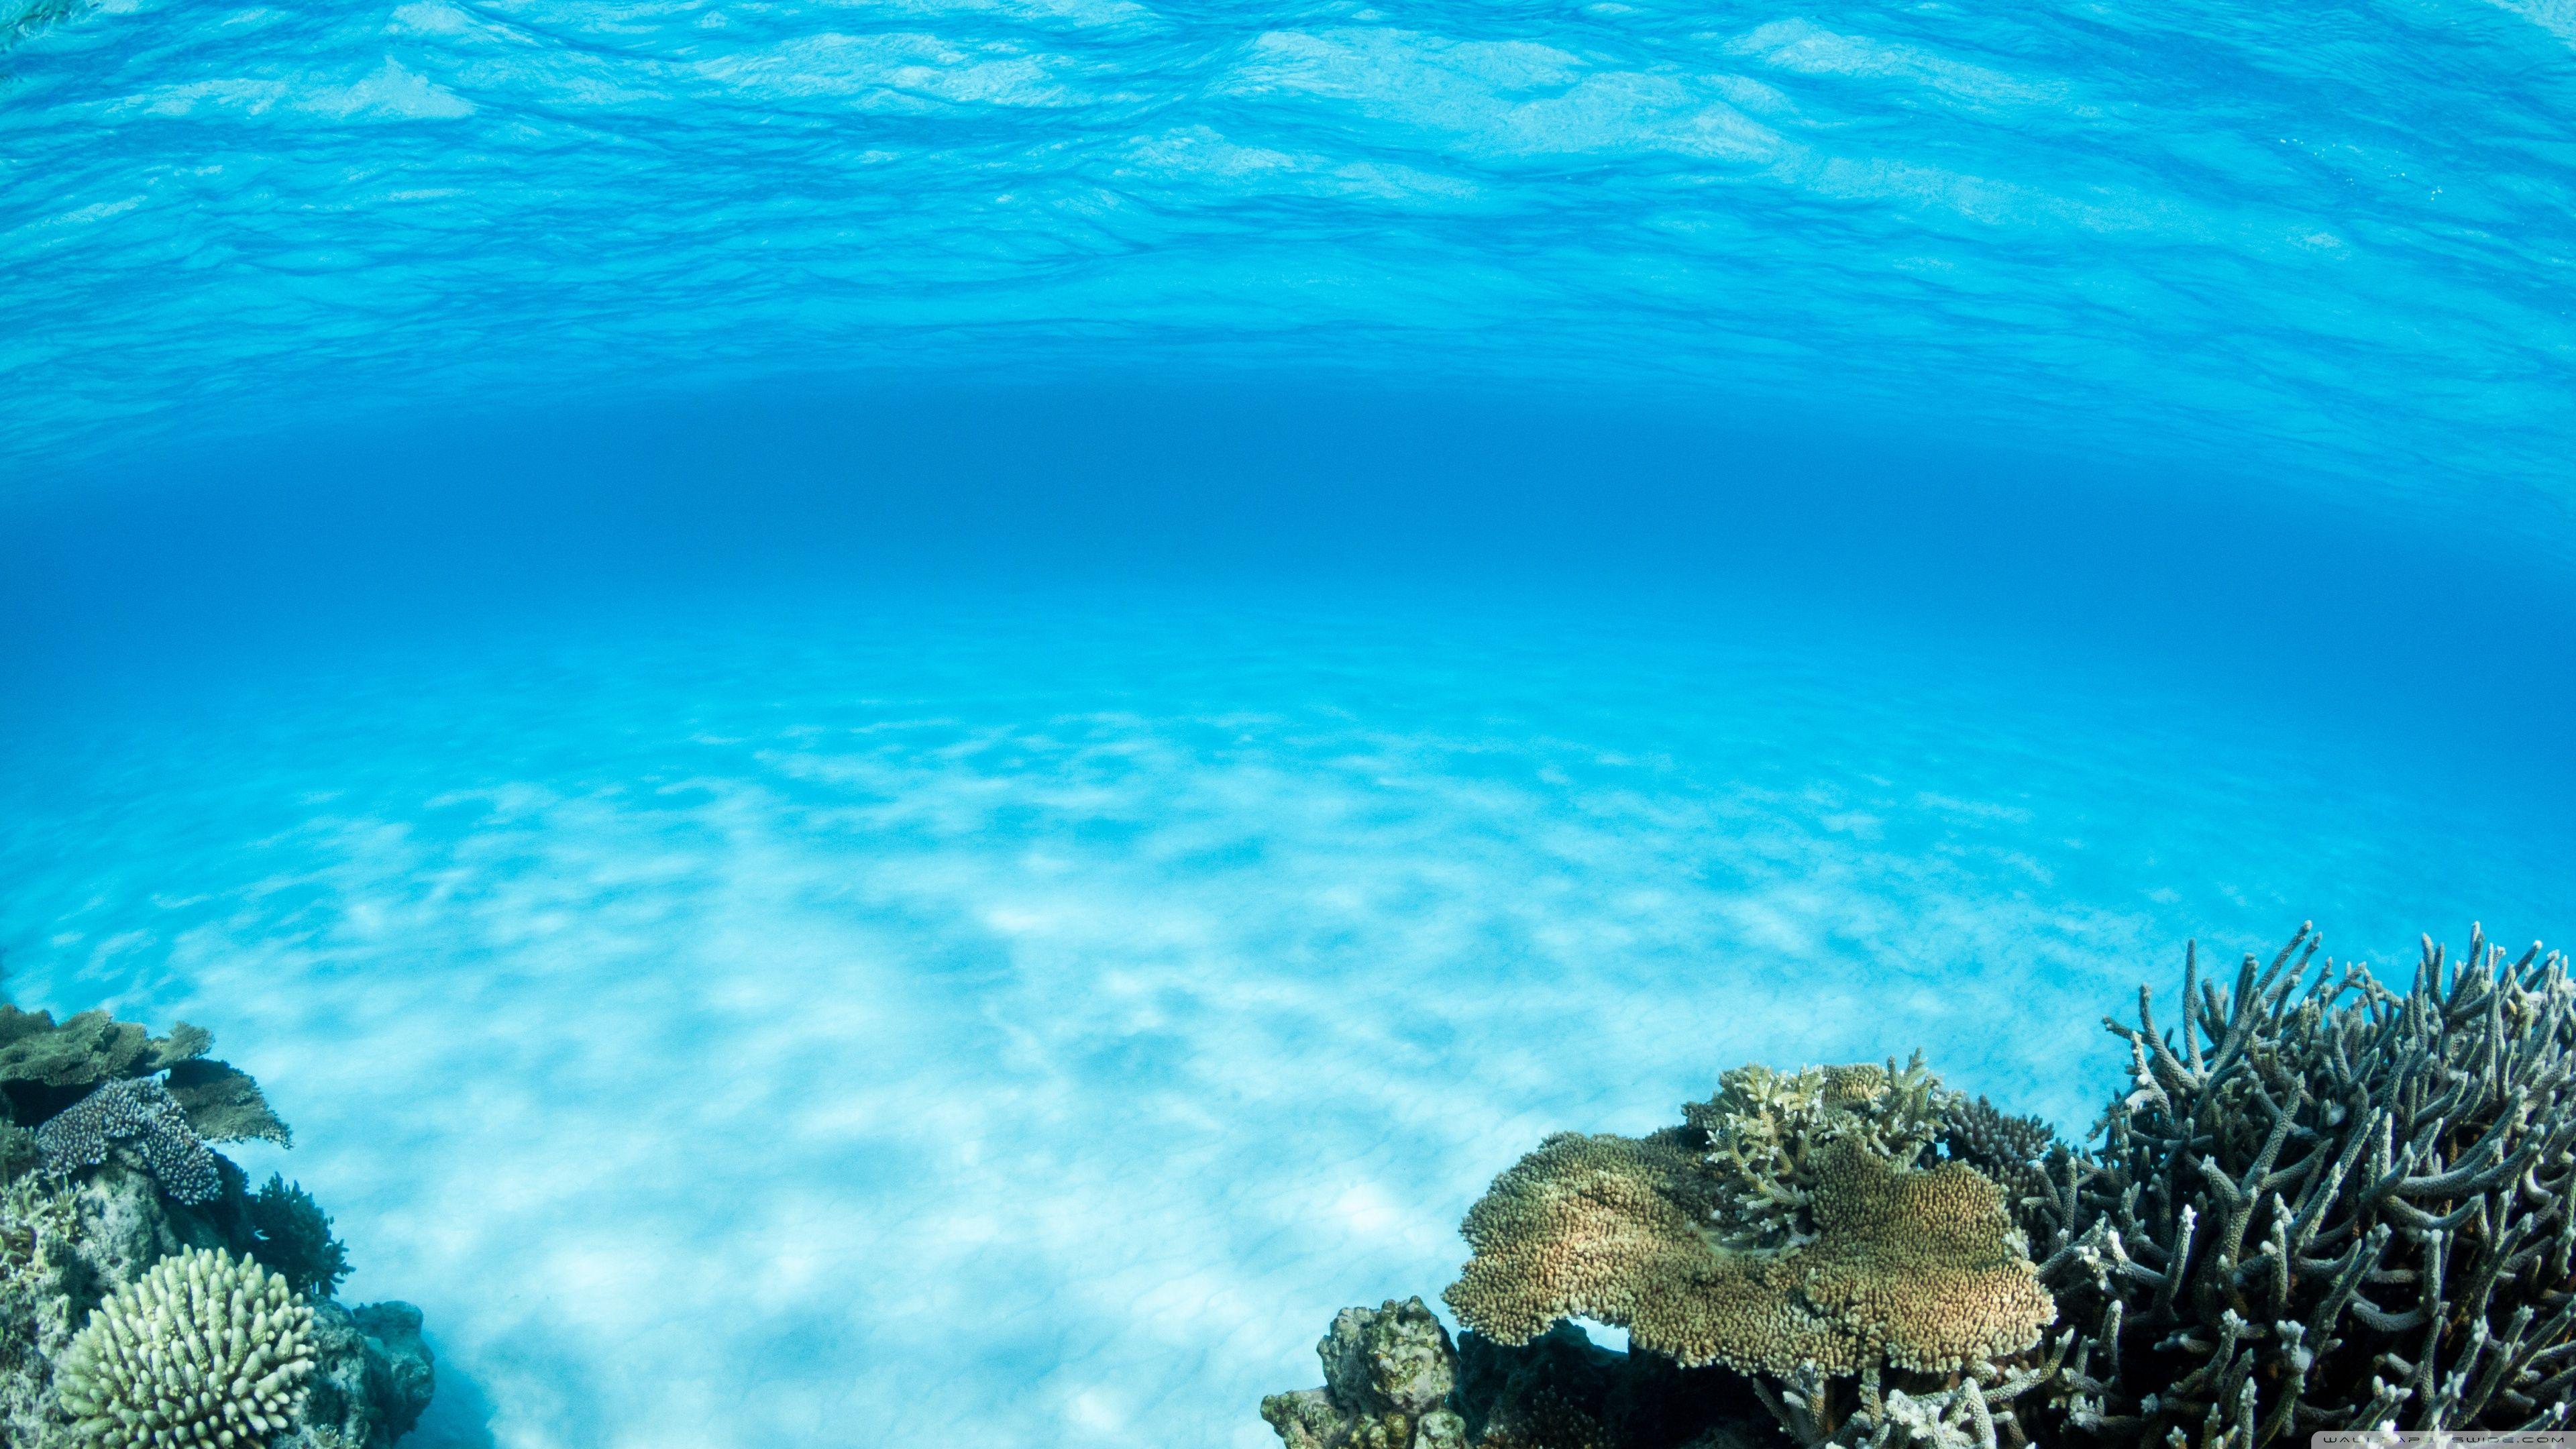 Hd underwater wallpapers top free hd underwater - Underwater desktop background ...